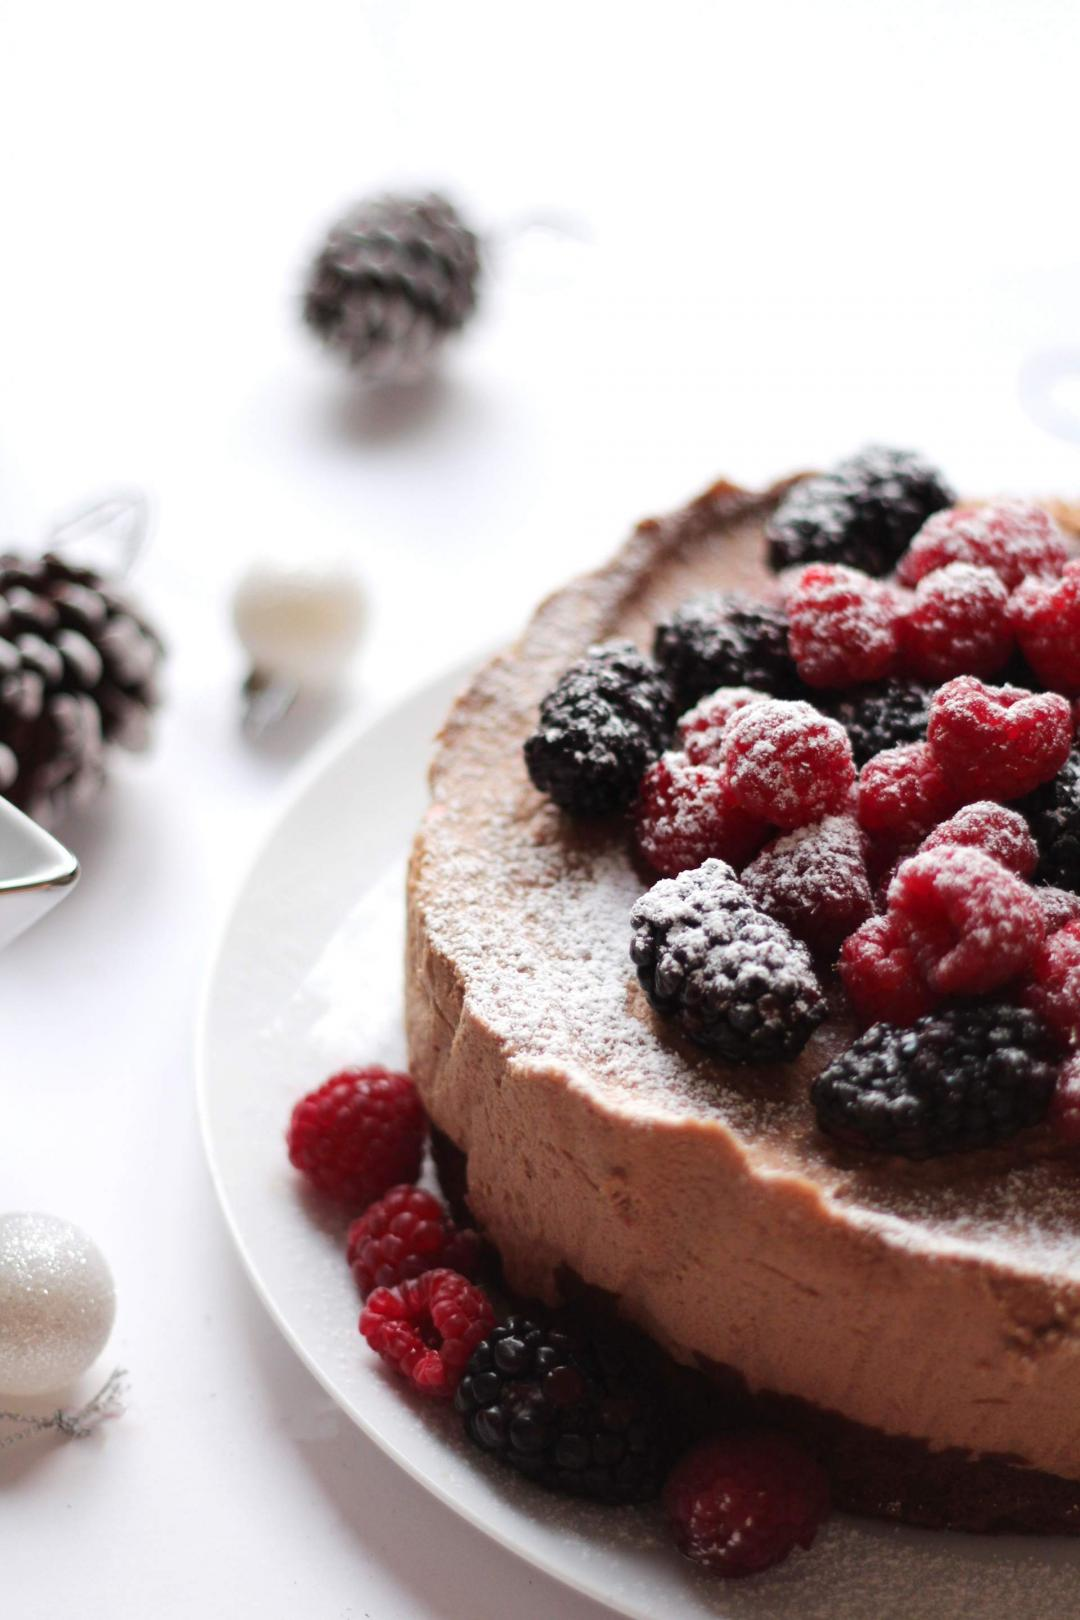 lindt-chocolate-mousse-cake-alternative-christmas-cake-easy-recipe-3